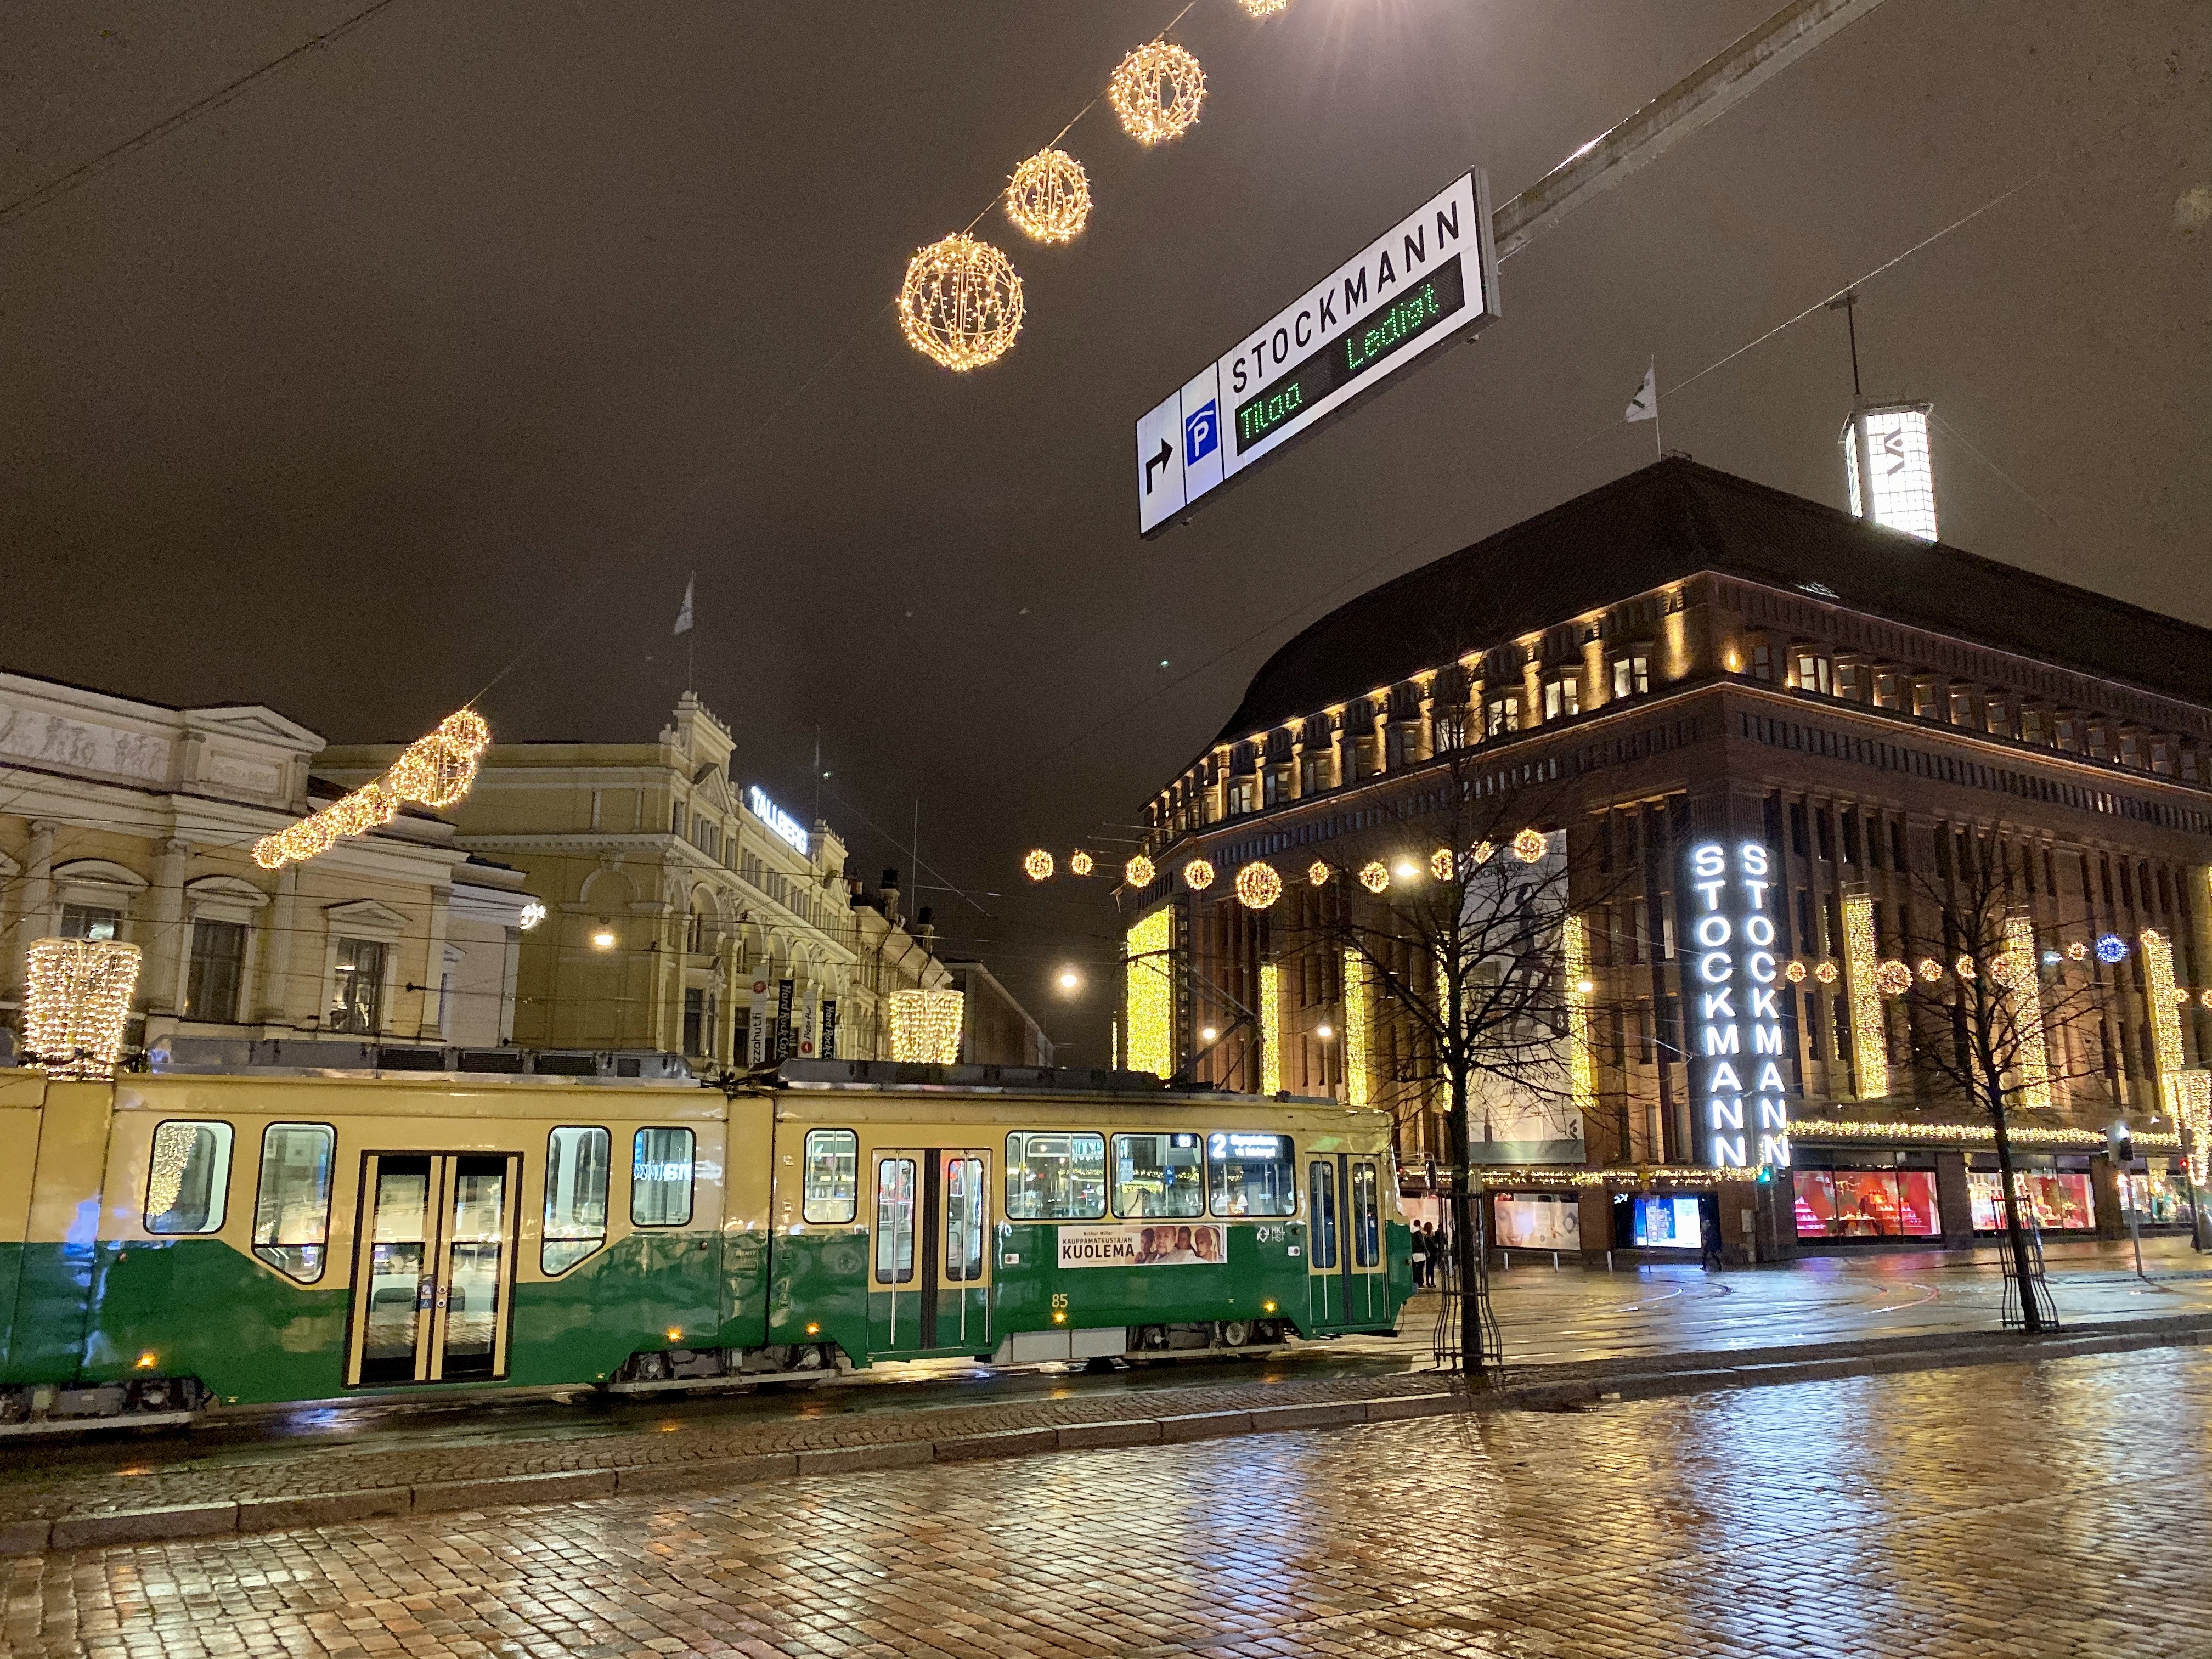 Christmas lights and a tram in Helsinki, Finland.